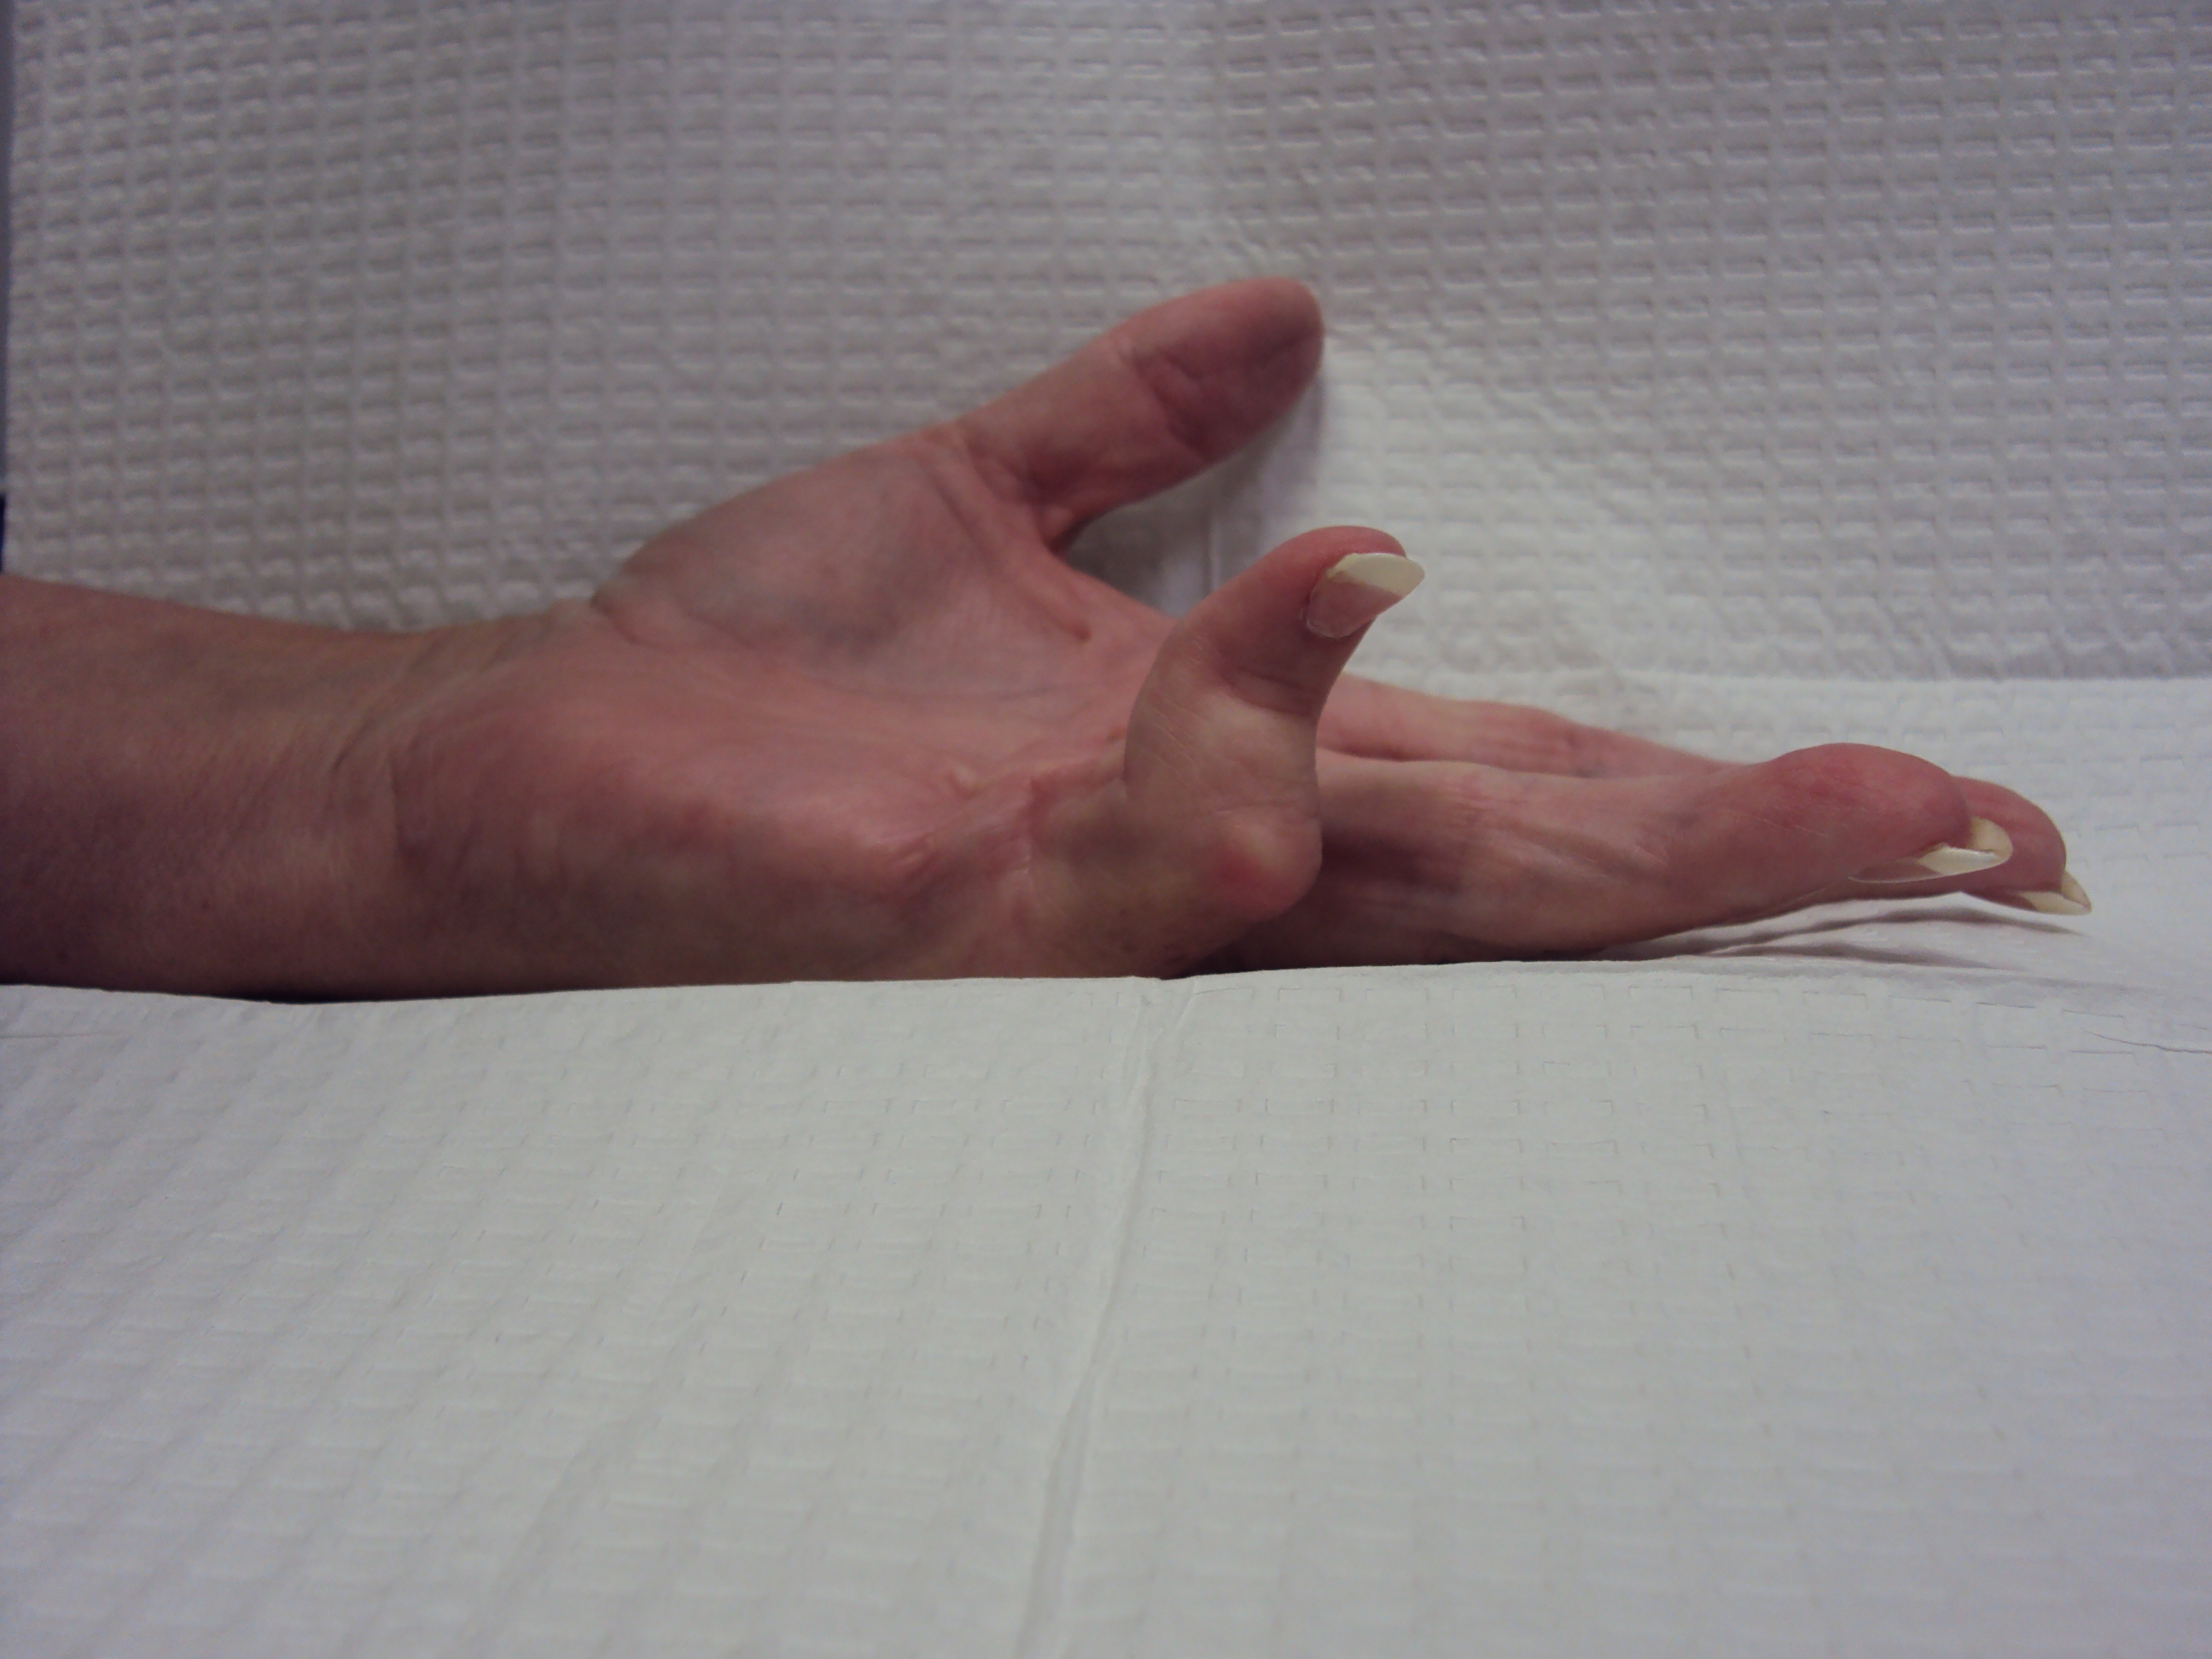 Gallery: Boutonniere related to Dupuytren contracture